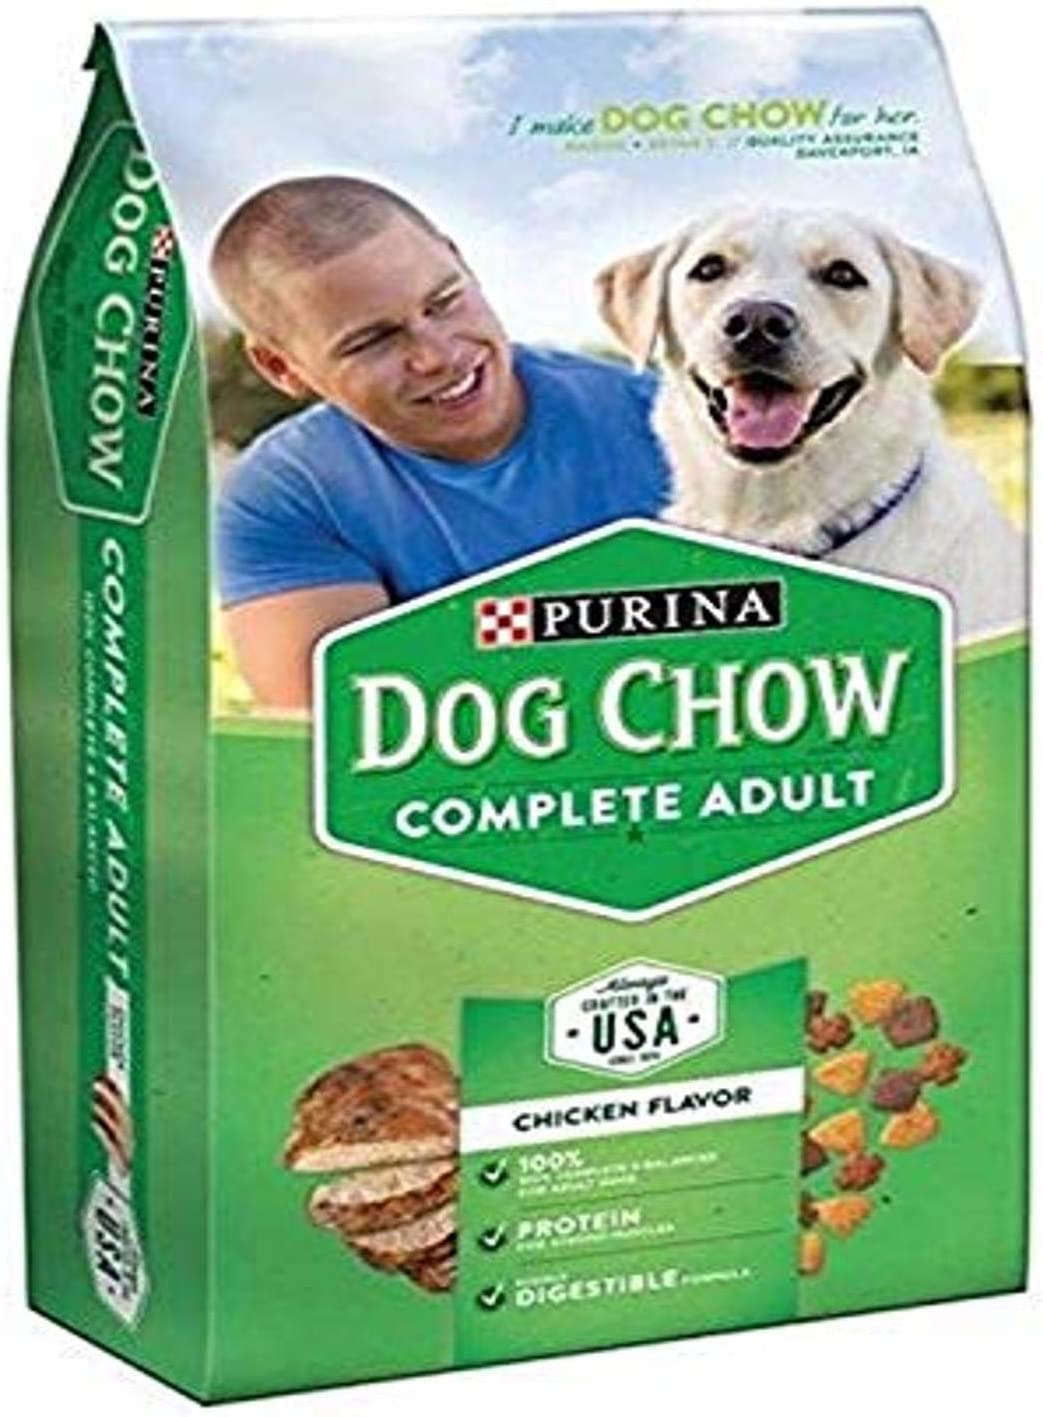 Nestle Purina 1780014521 Dog Chow, 4.4 lb